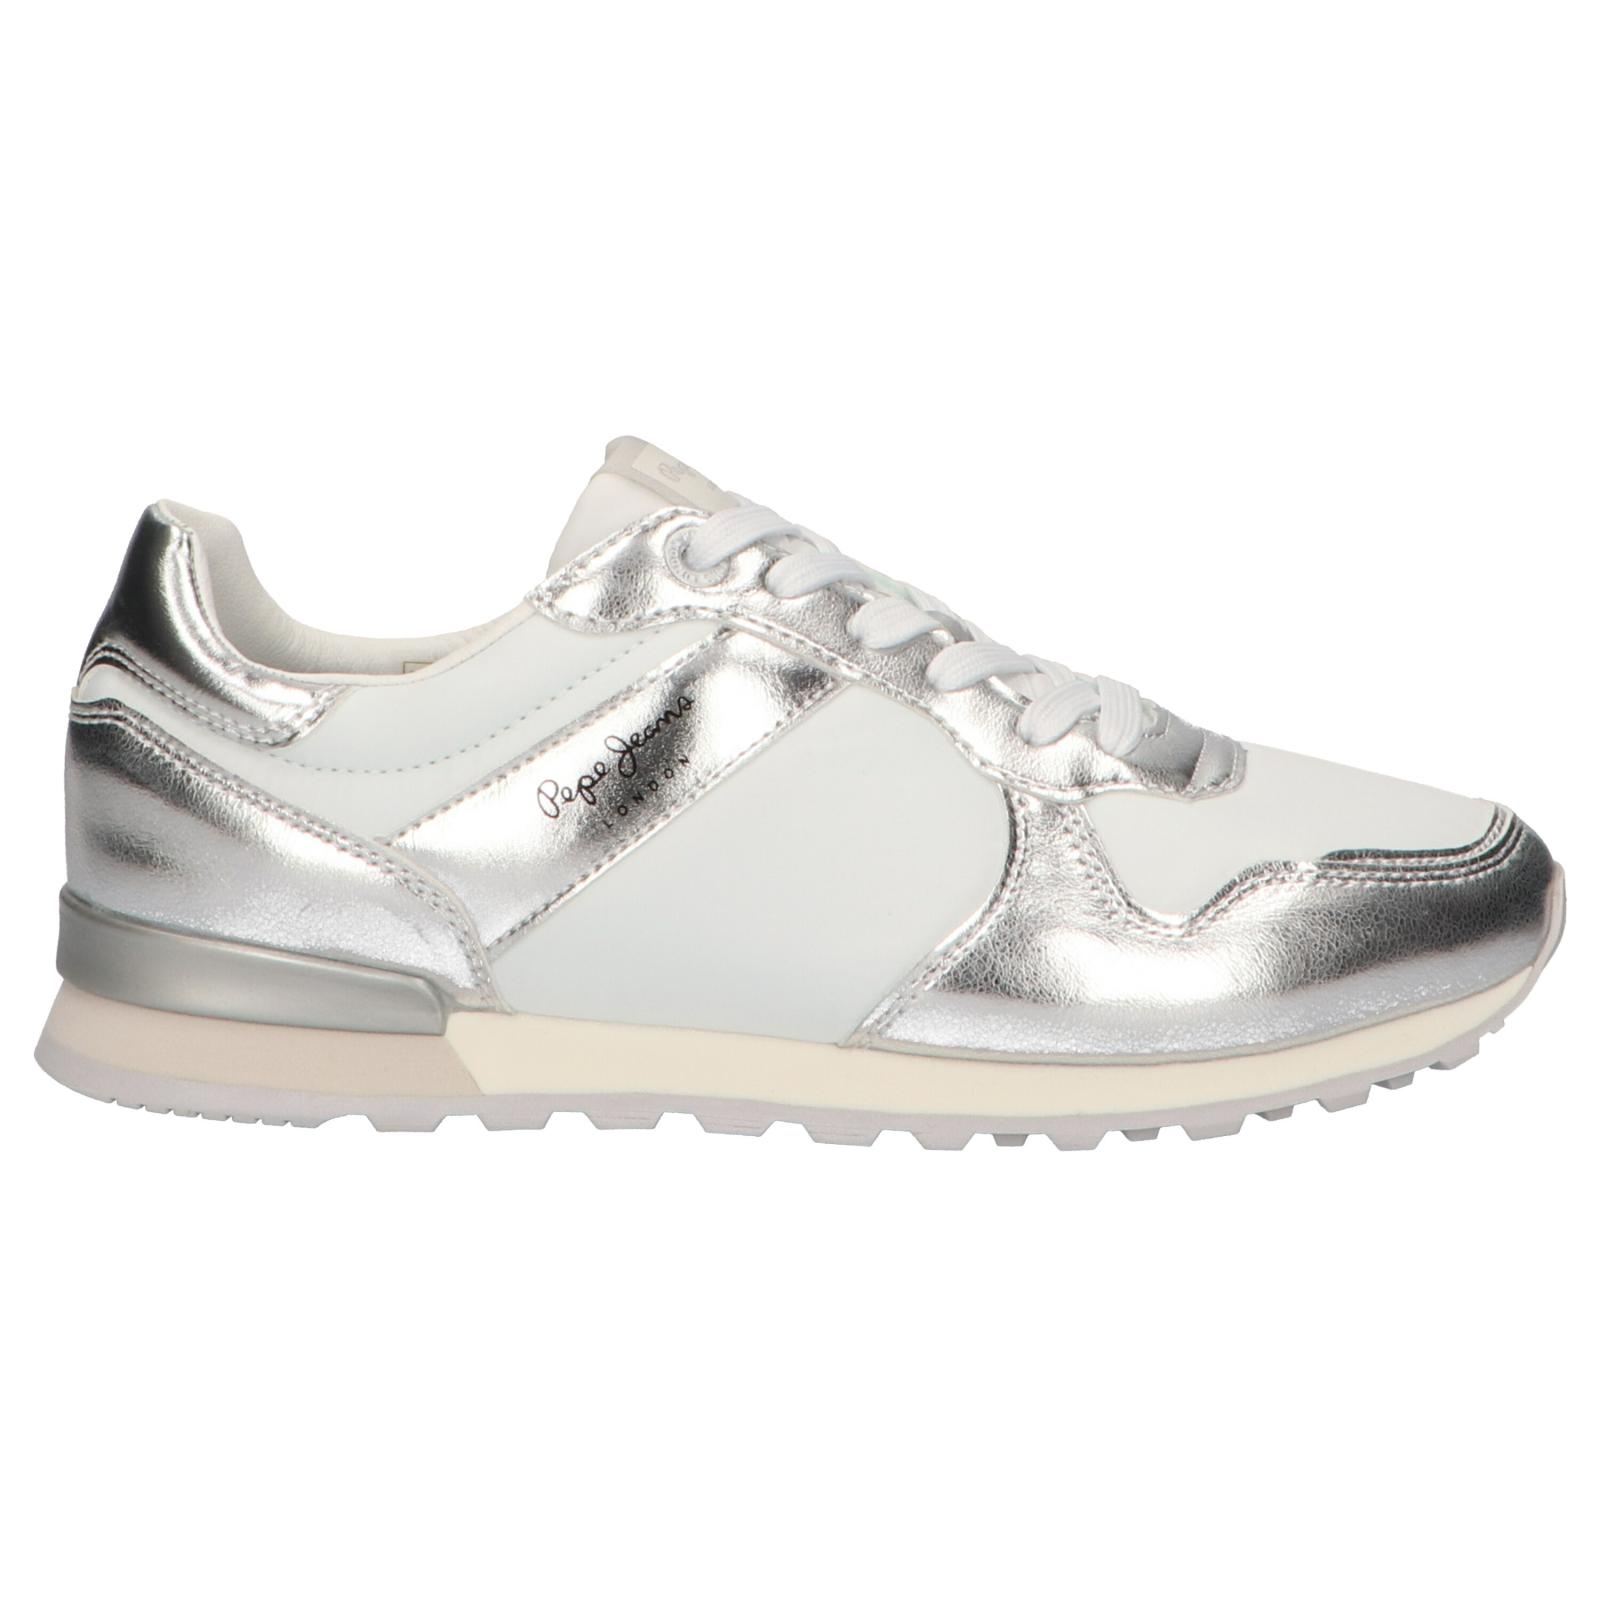 Sports shoes for woman PEPE JEANS